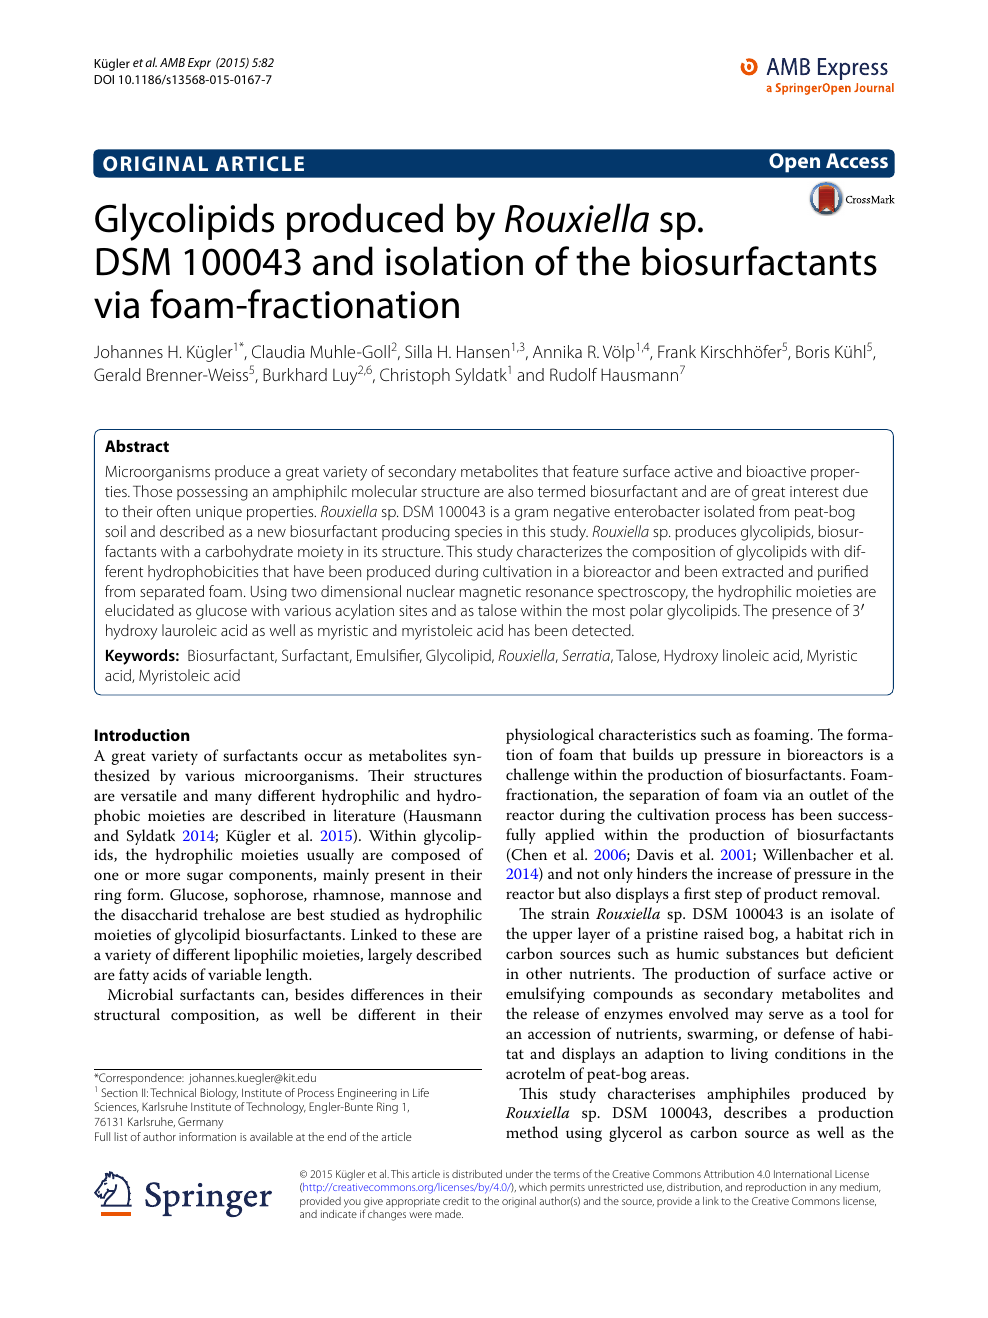 Glycolipids produced by Rouxiella sp  DSM 100043 and isolation of